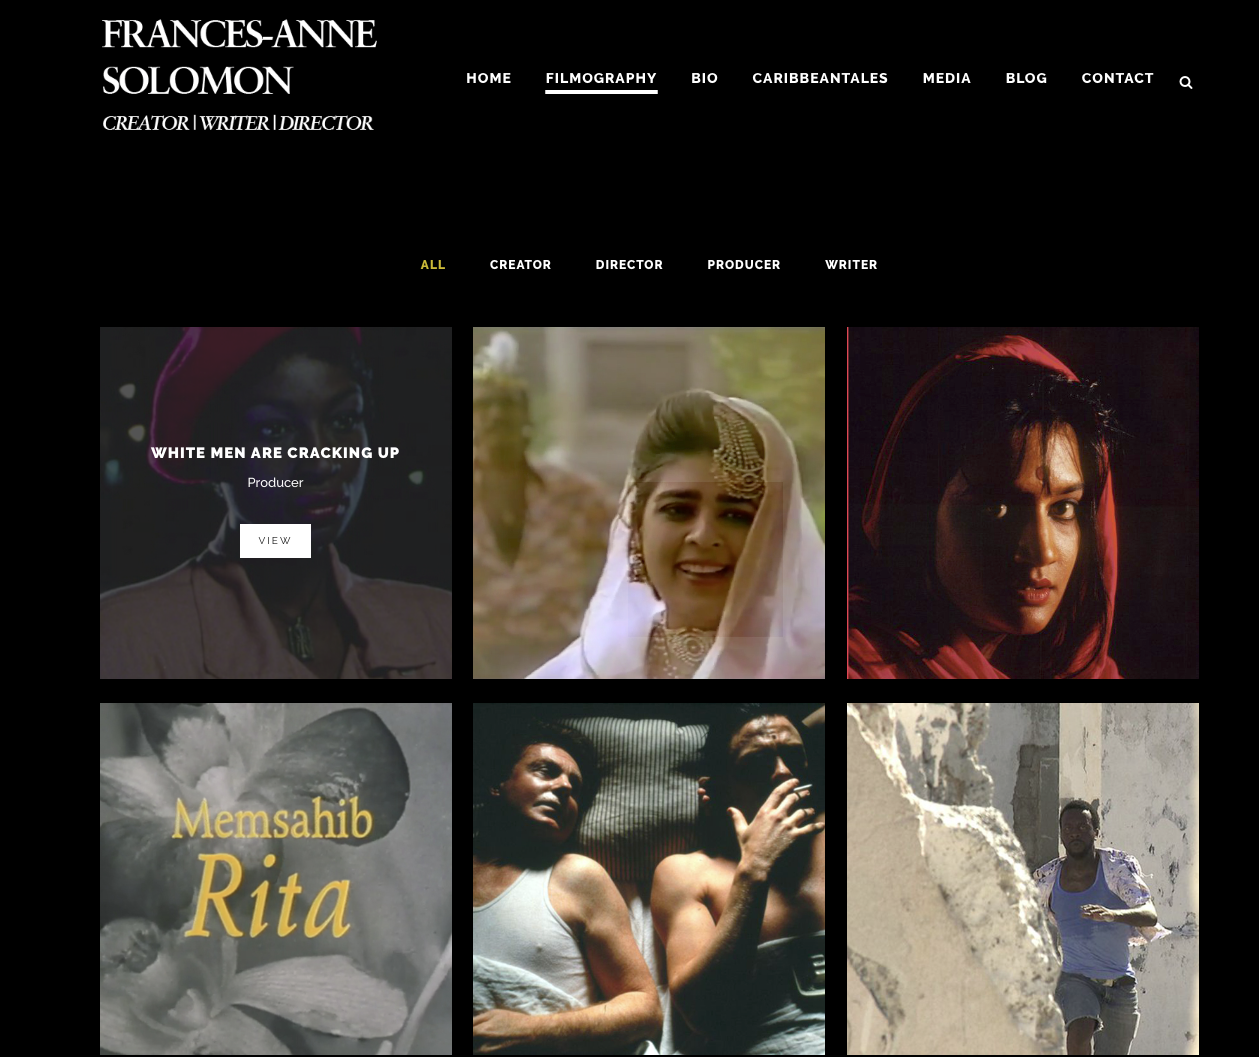 Frances-Anne Solomon Filmography page